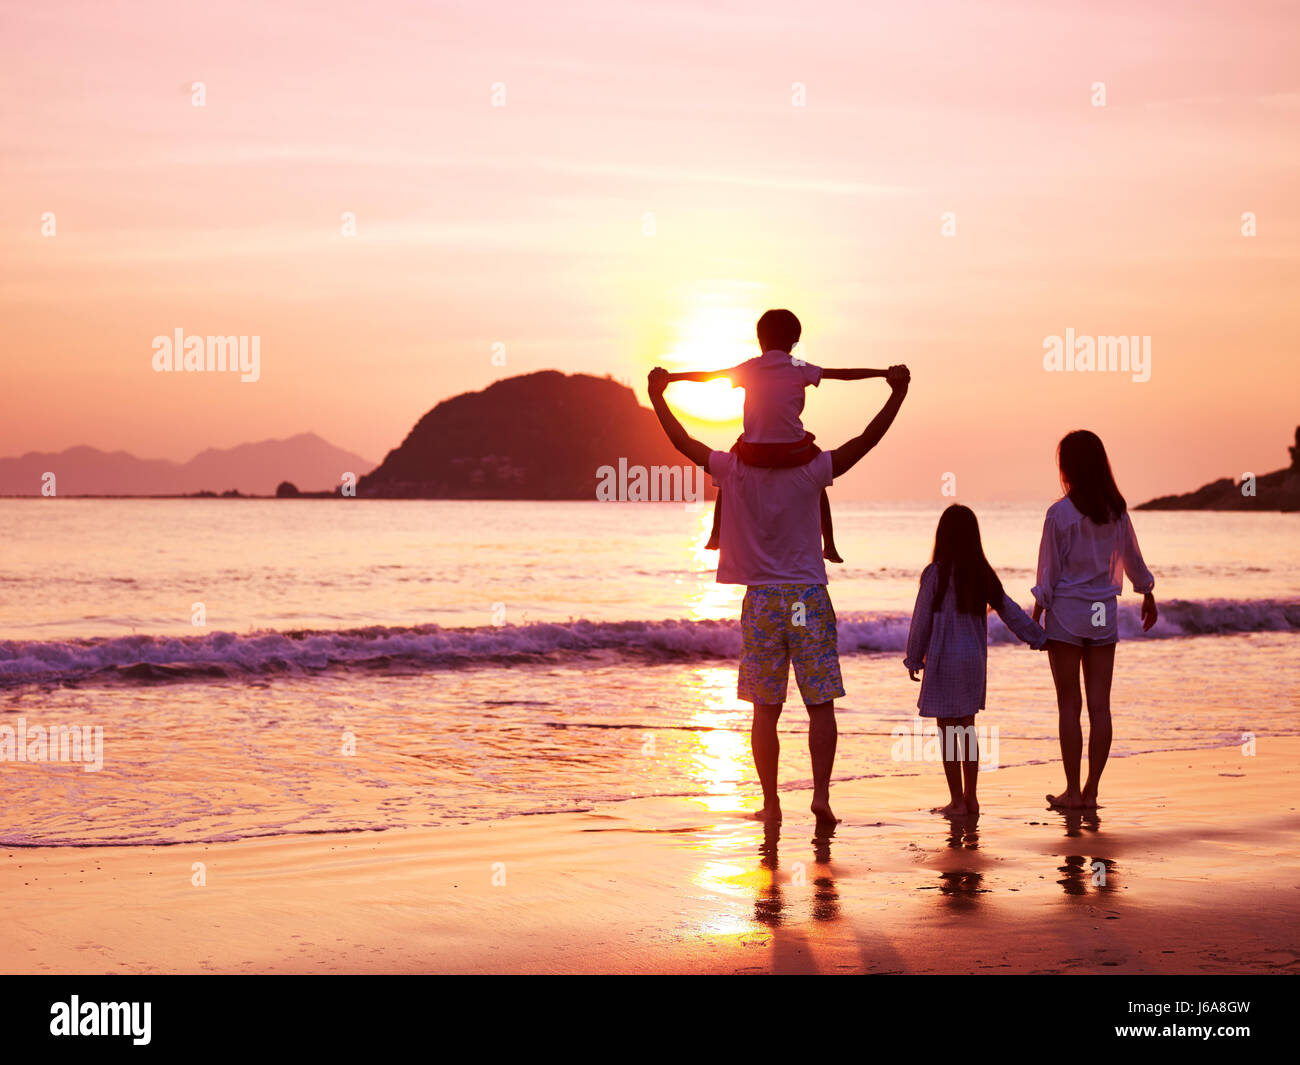 asian single men in sunrise beach Download this asian family watching sunrise on beach photo now and search more of istock's library of royalty-free stock images that features adult photos available for quick and easy download.